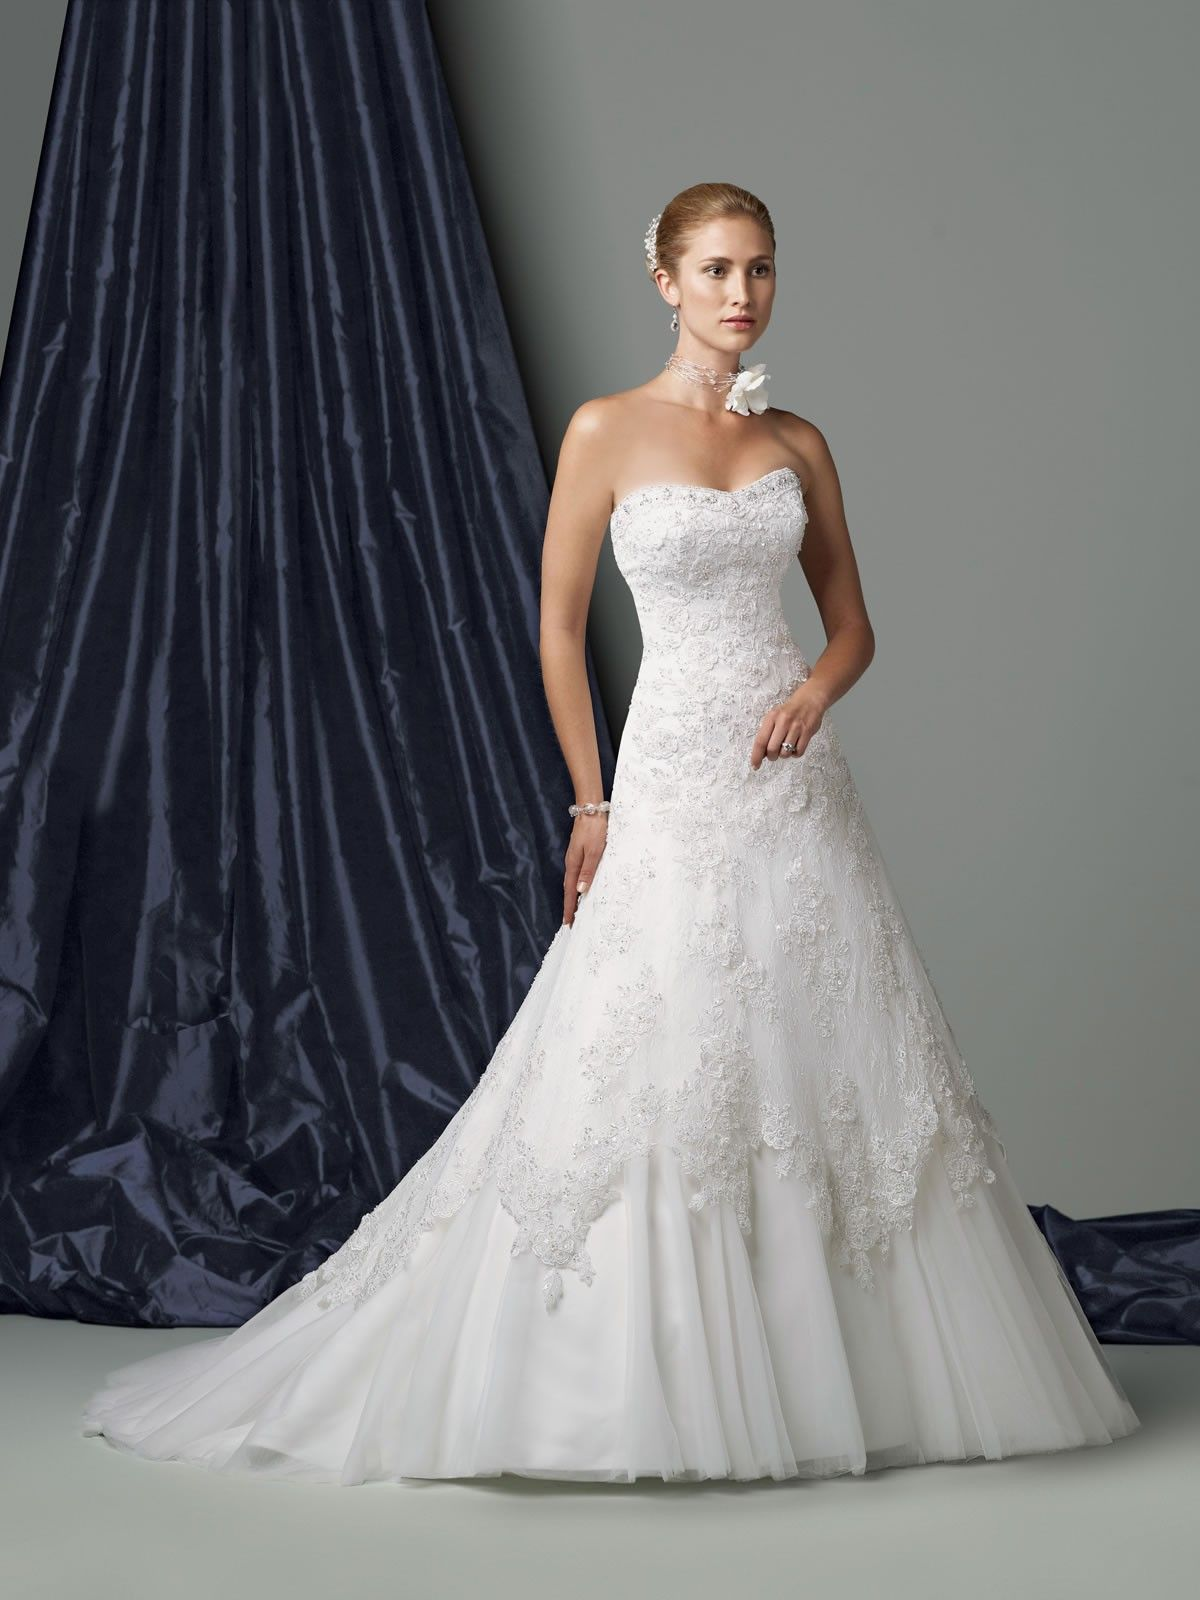 Dipped wedding dress  Organza Softly Curved Neckline Low Dipped Back Bodice Aline Wedding